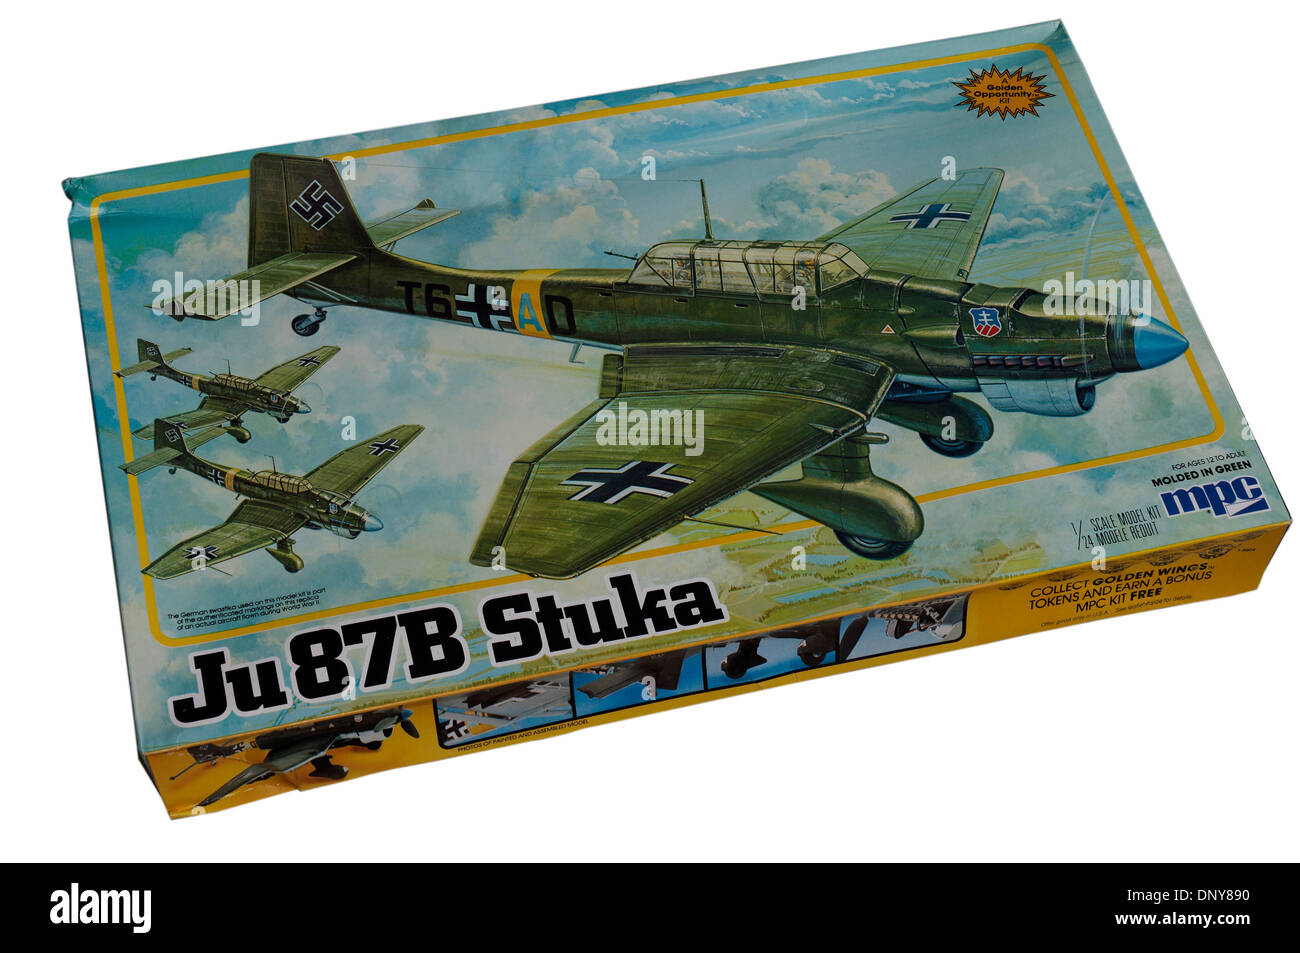 A 1/24th scale Junkers Ju-87 Stuka dive bomber plastic scale model kit - Stock Image